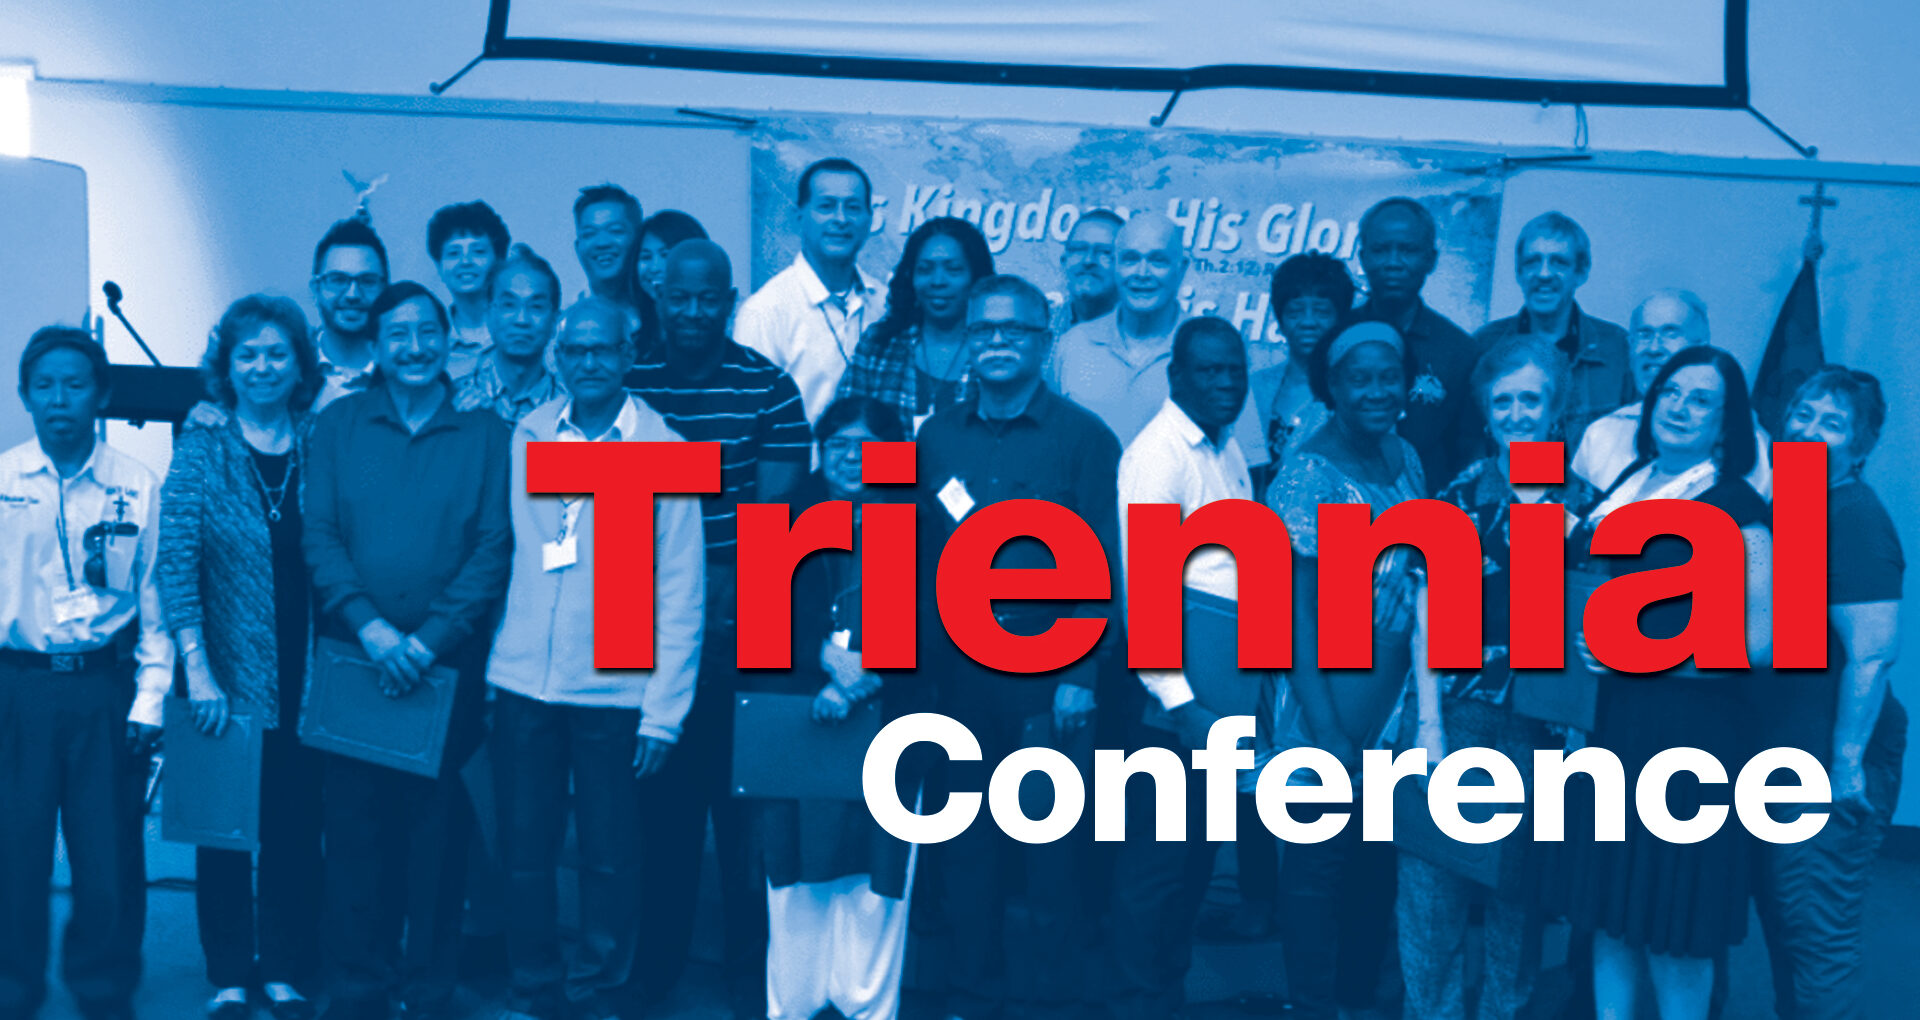 CINA-slide-Triennial-Conference